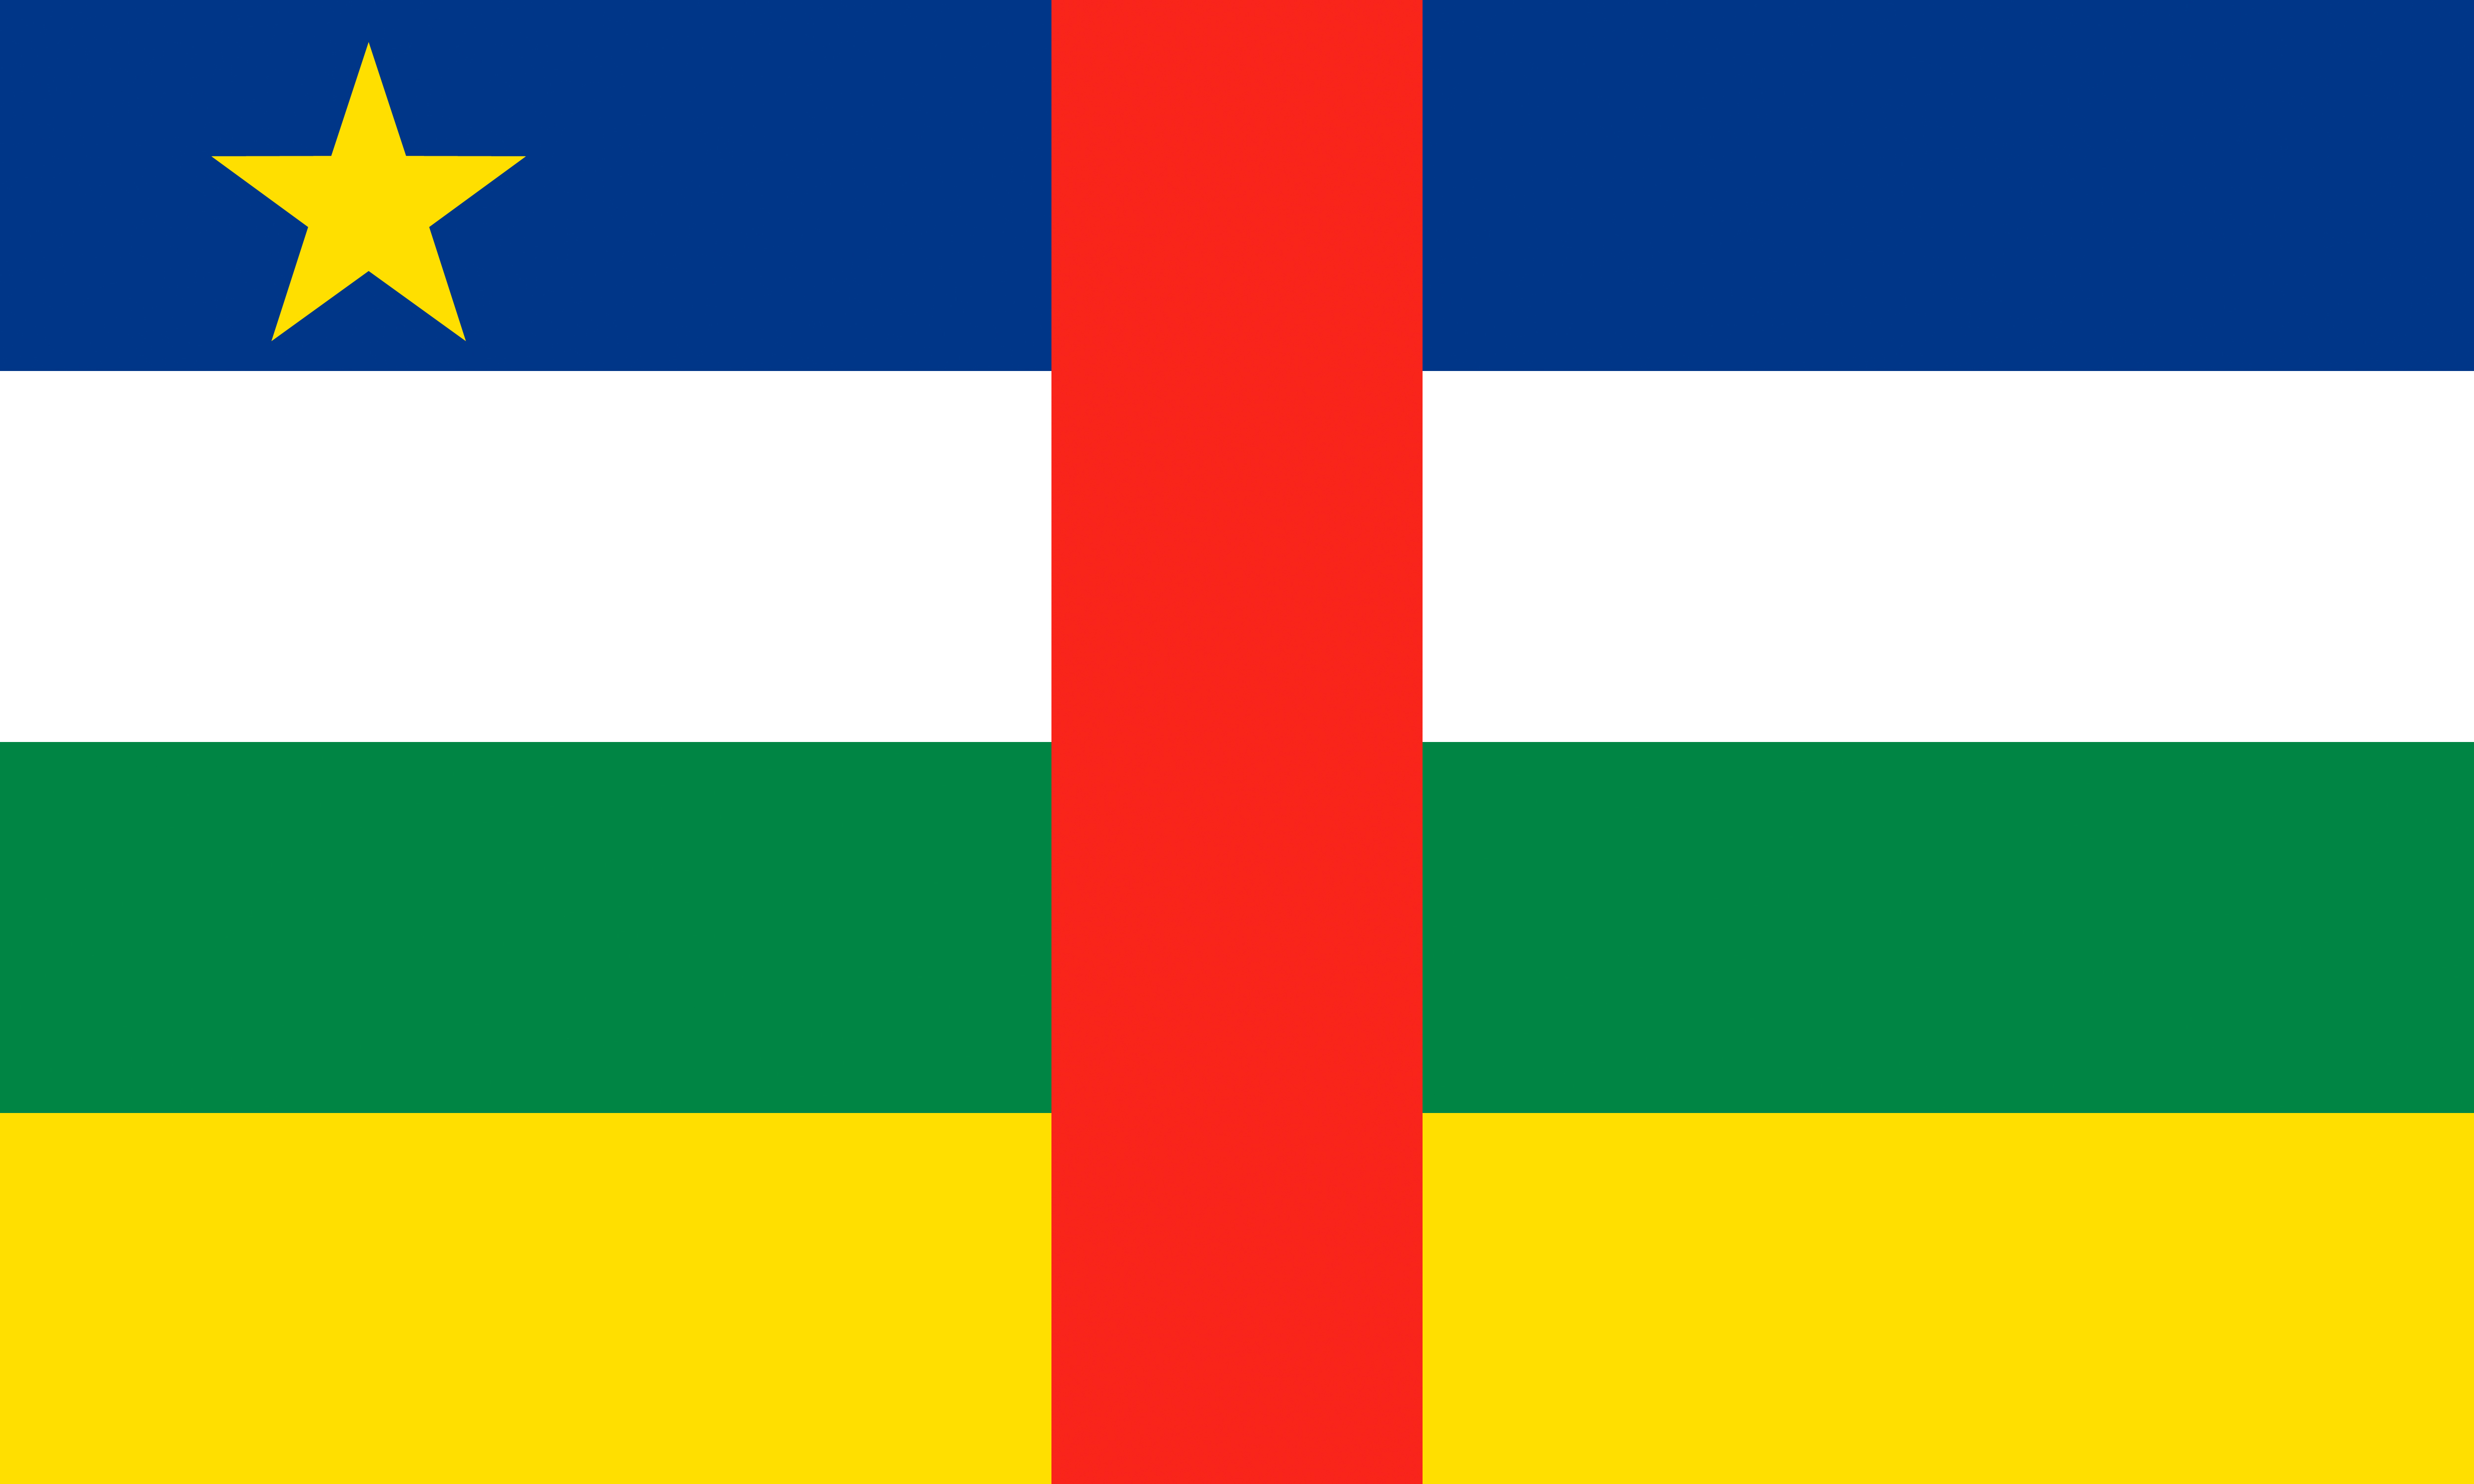 Photo Central African Republic Flag 5000x3000 5000x3000